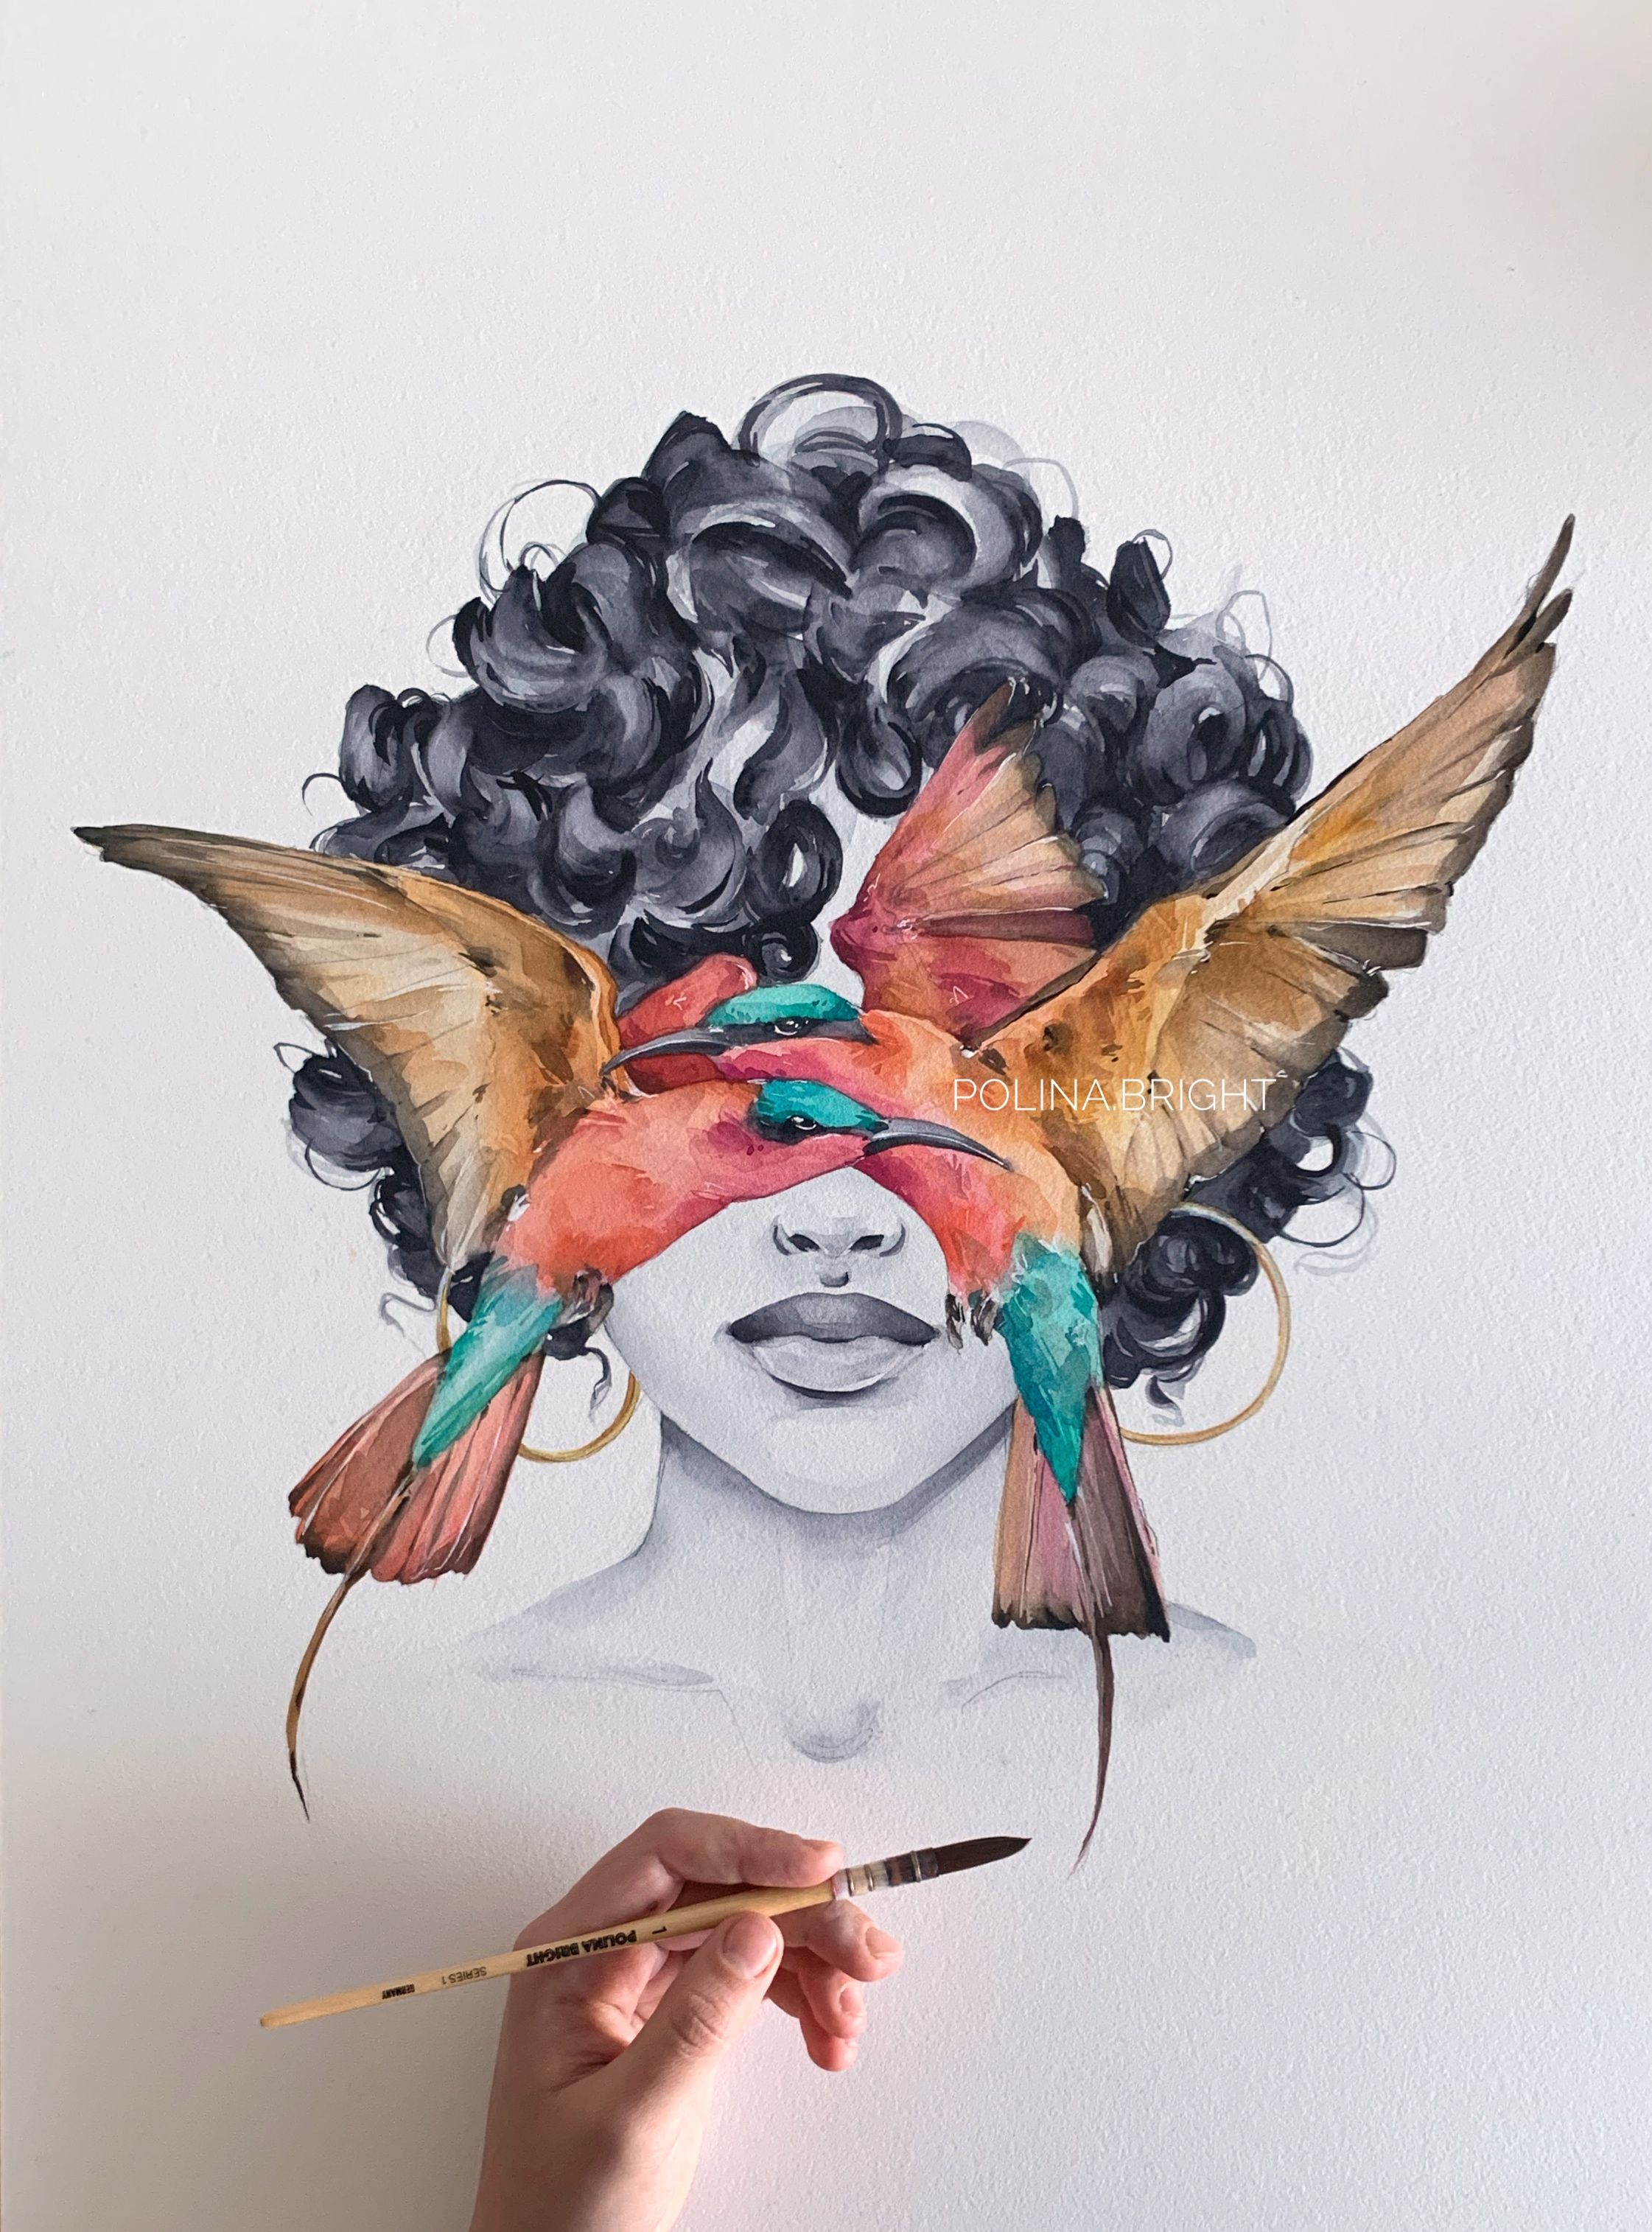 Bee-eater Blindfolded by Polina Bright